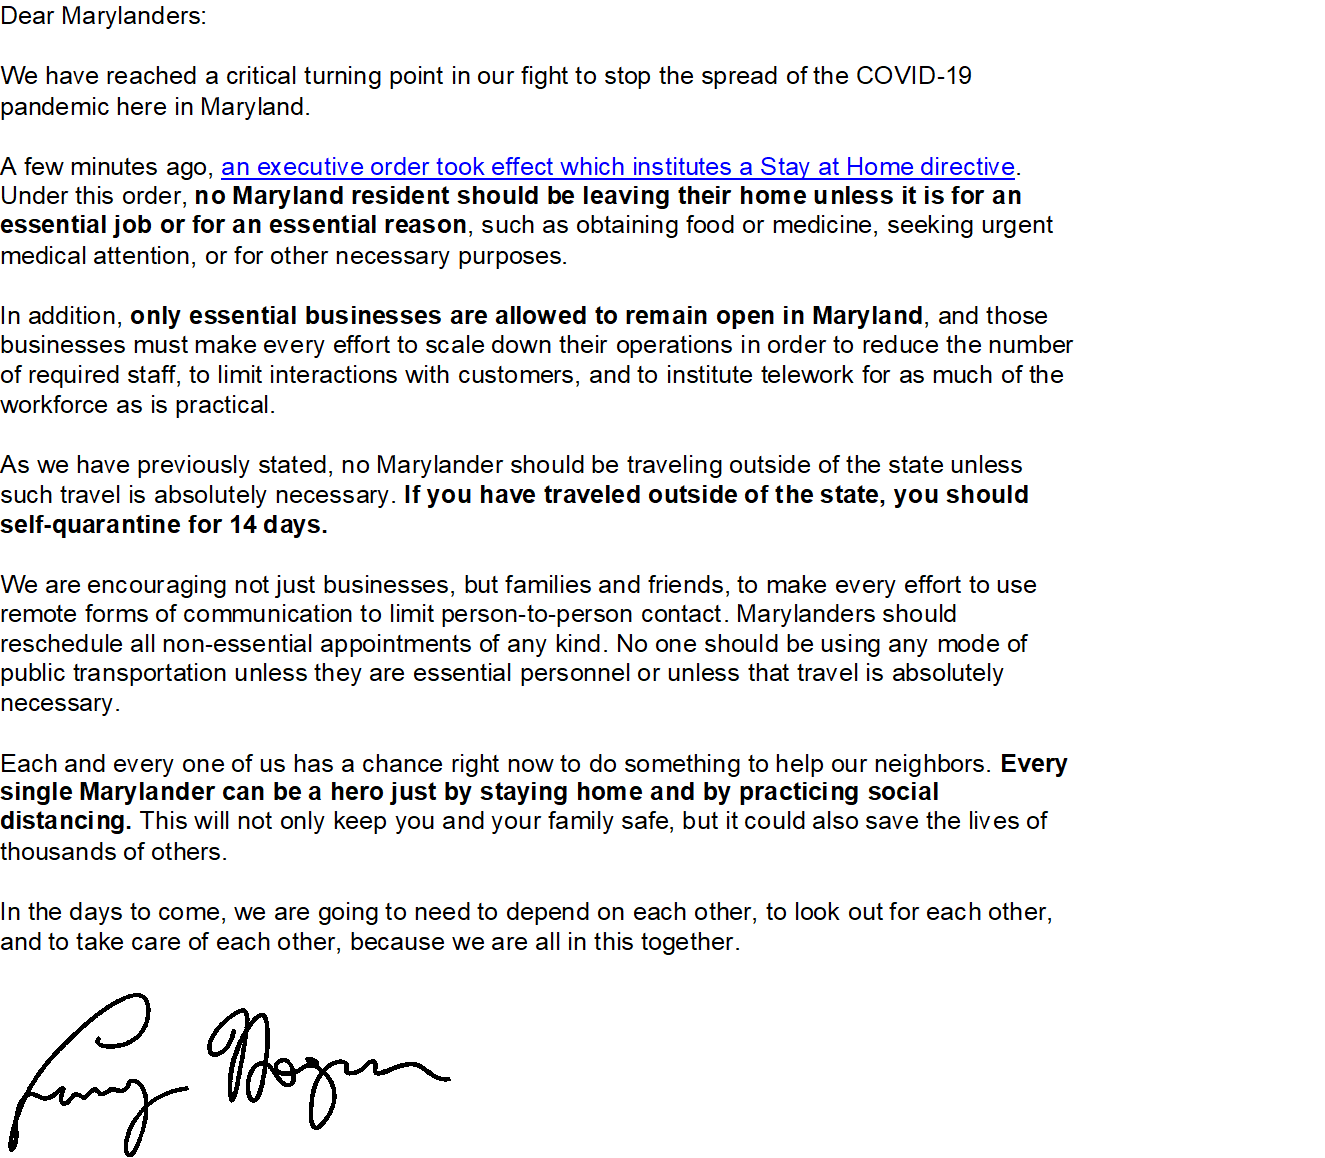 UPDATE FROM GOV HOGAN2